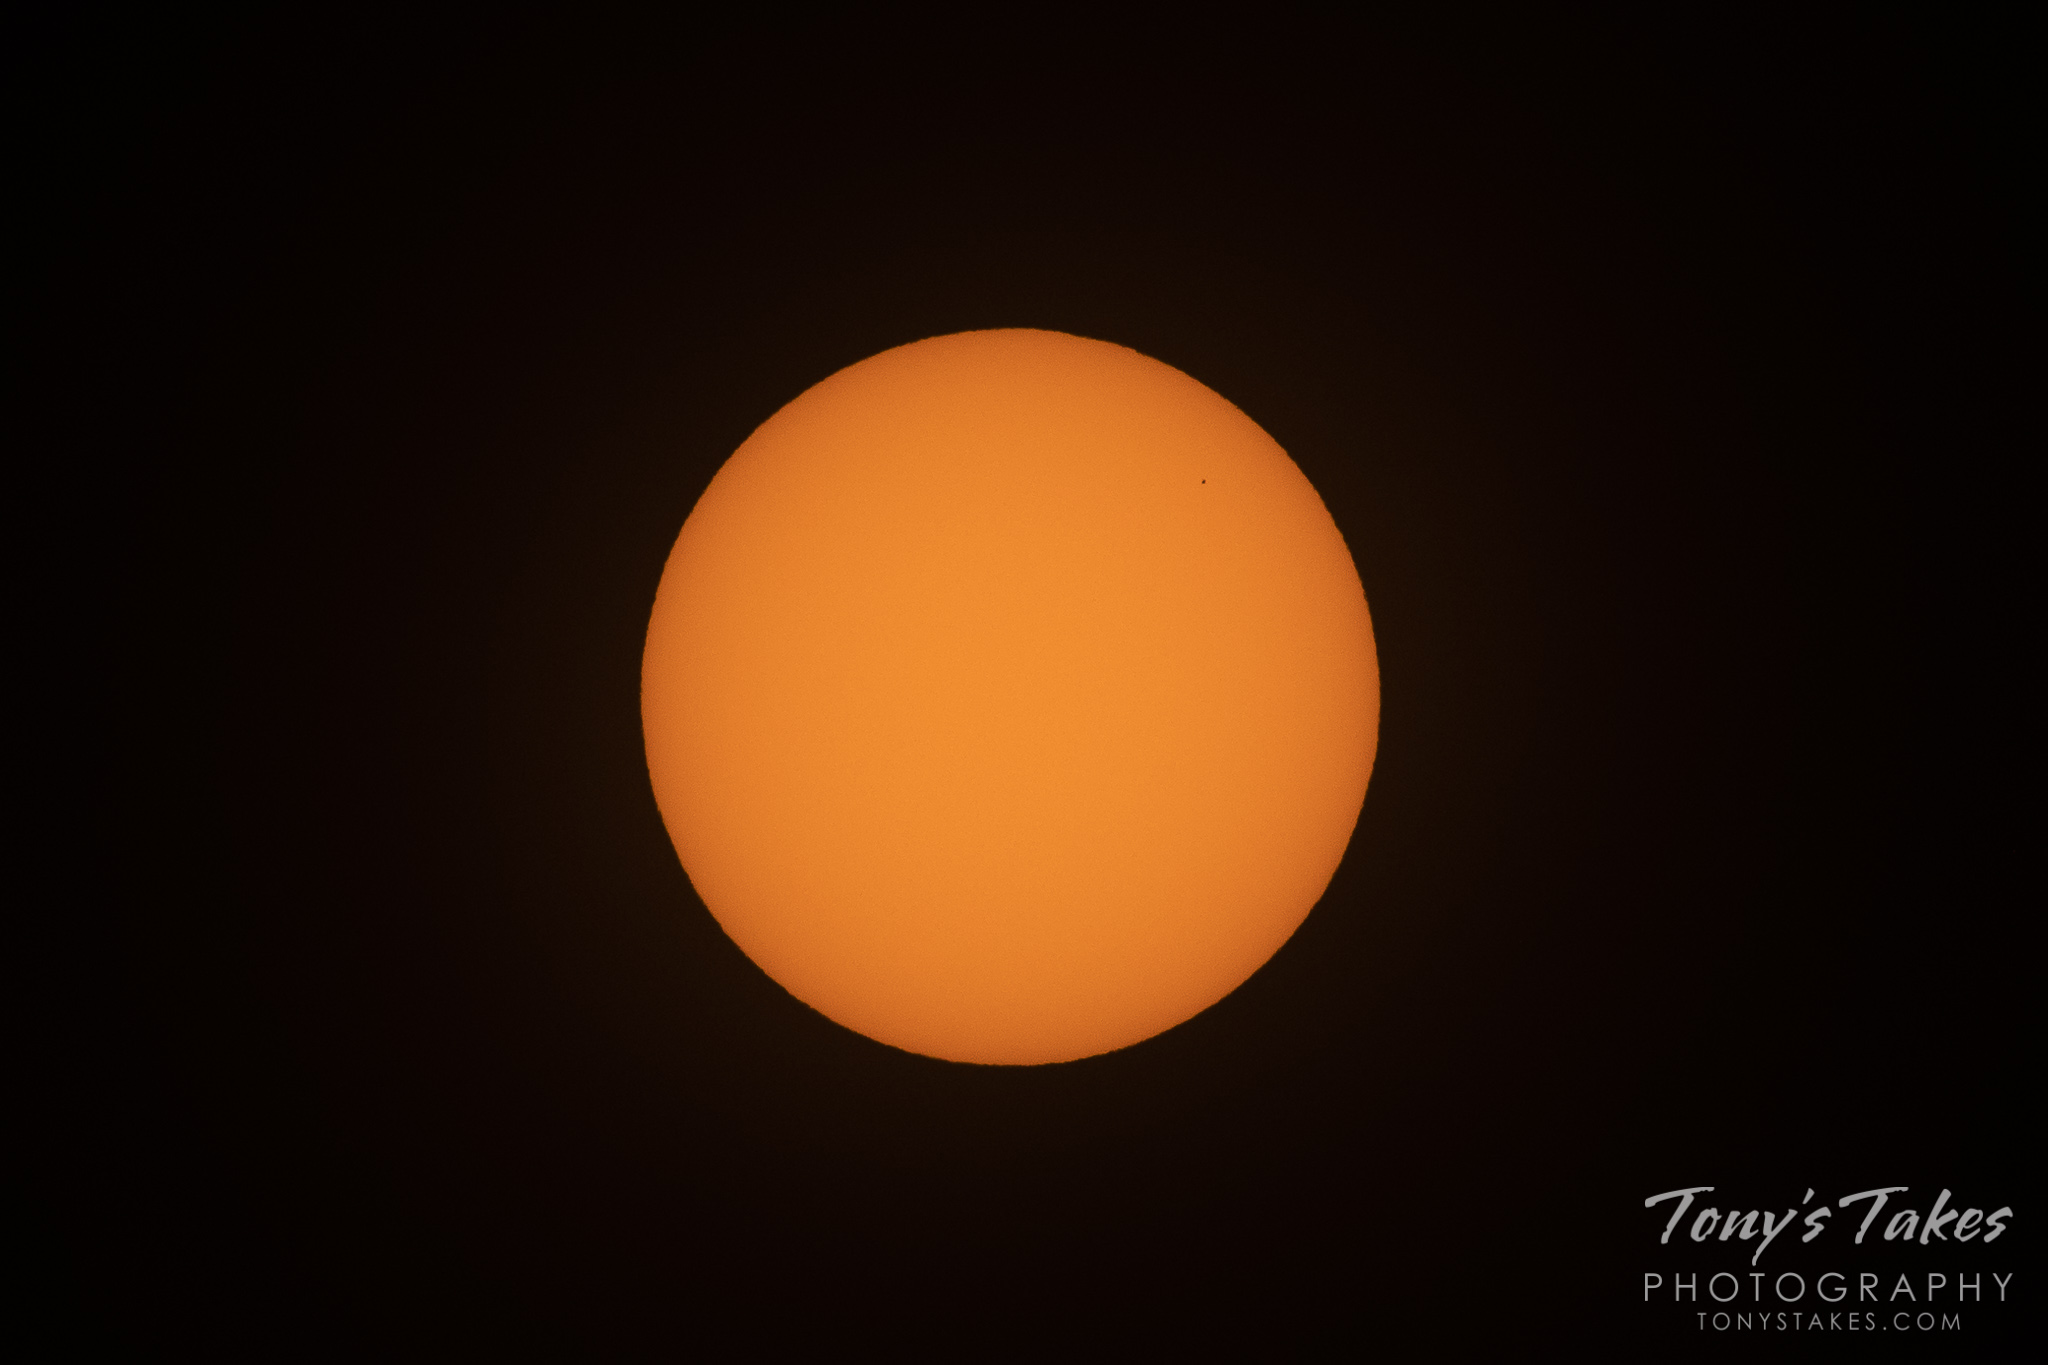 The planet Mercury transits in front of the sun. (© Tony's Takes)